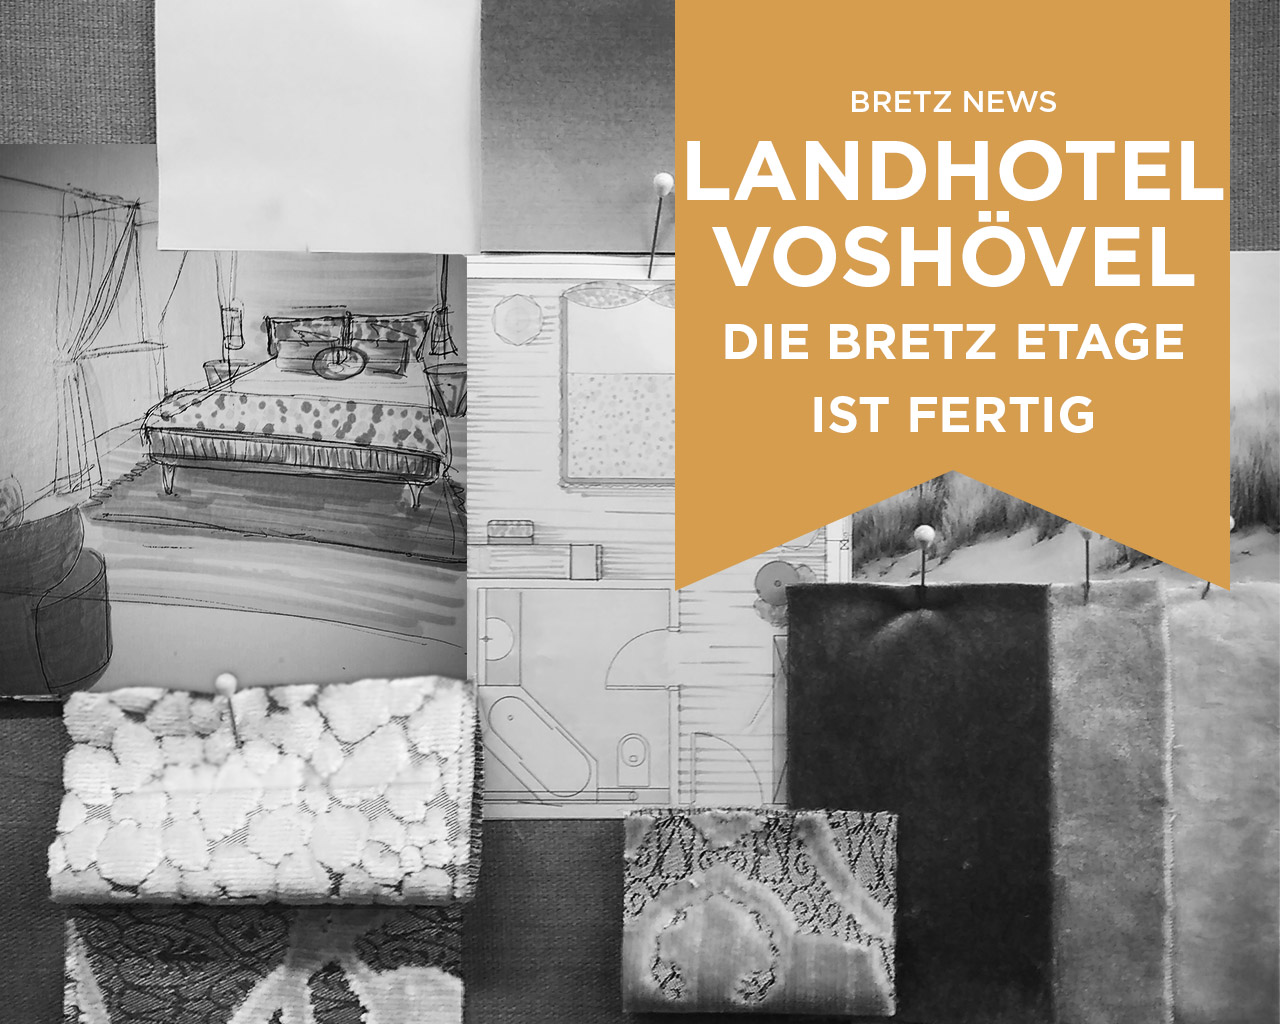 die bretz etage im landhotel vosh vel bretz. Black Bedroom Furniture Sets. Home Design Ideas